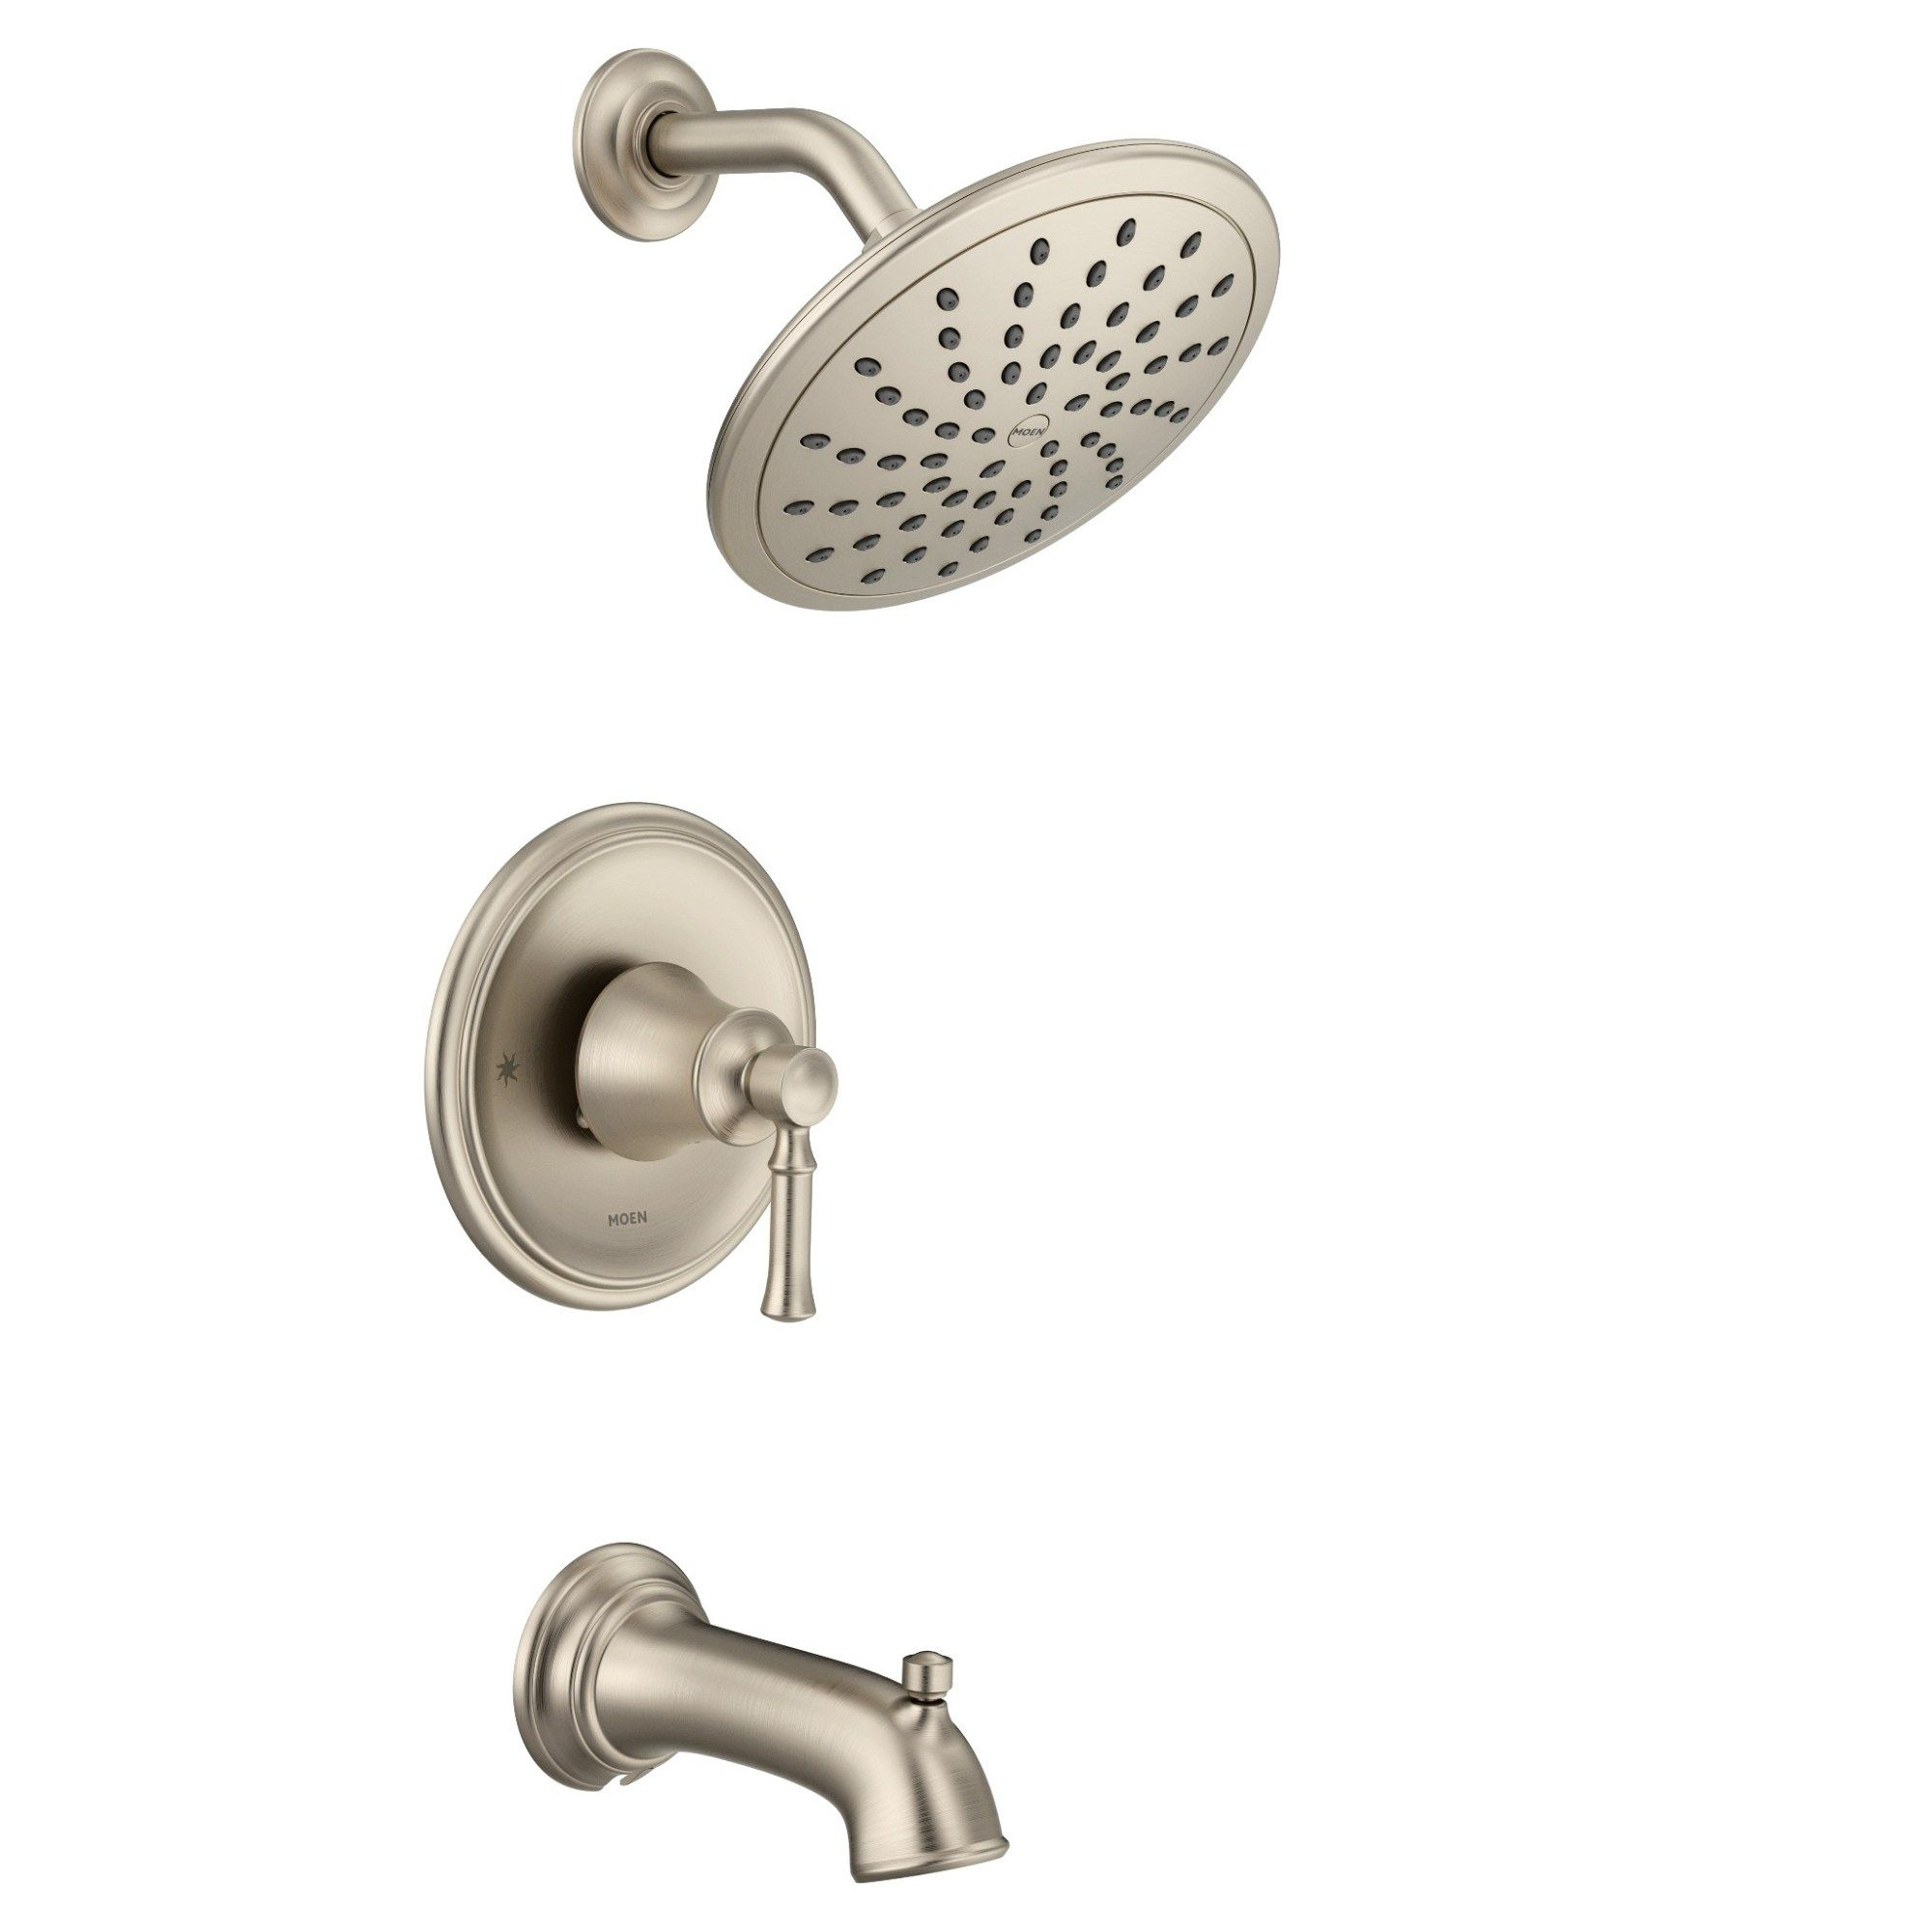 Moen Dartmoor Posi Temp R Tub Shower Brushed Nickel T2283epbn